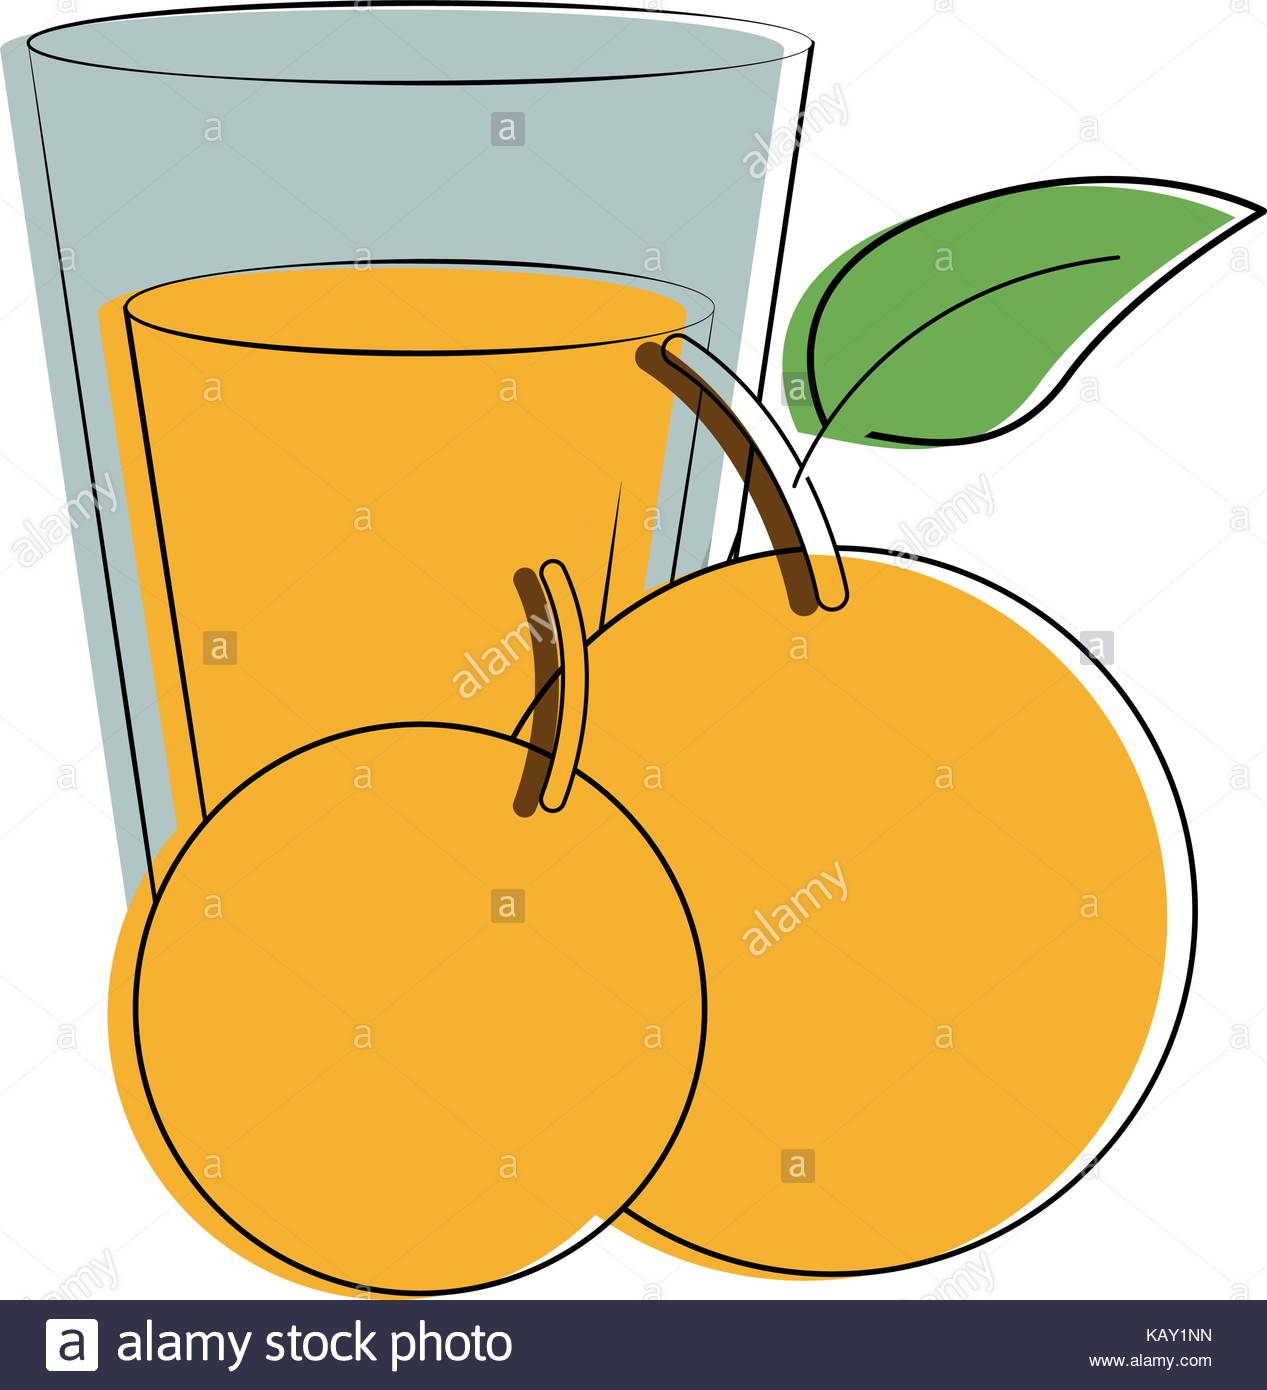 1267x1390 Orange Juice Carton Glass Stock Photos Amp Orange Juice Carton Glass